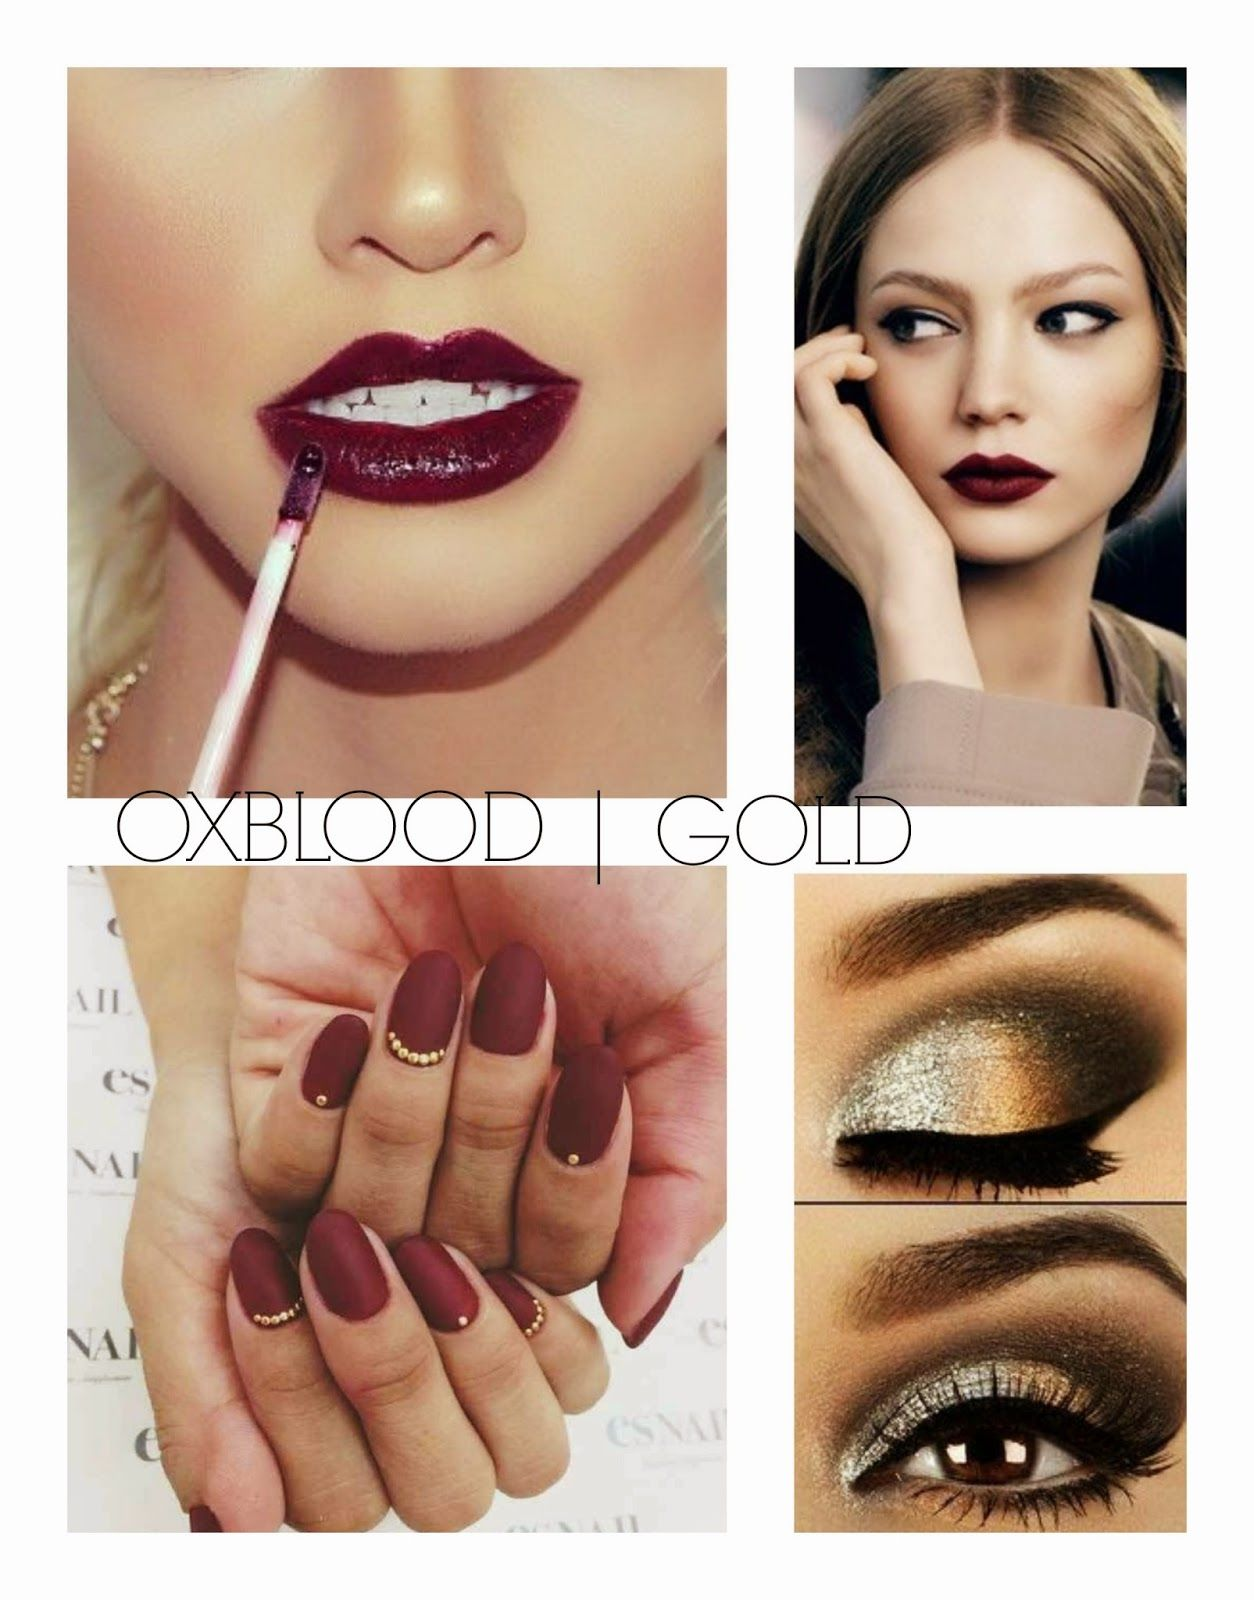 oxblood and gold